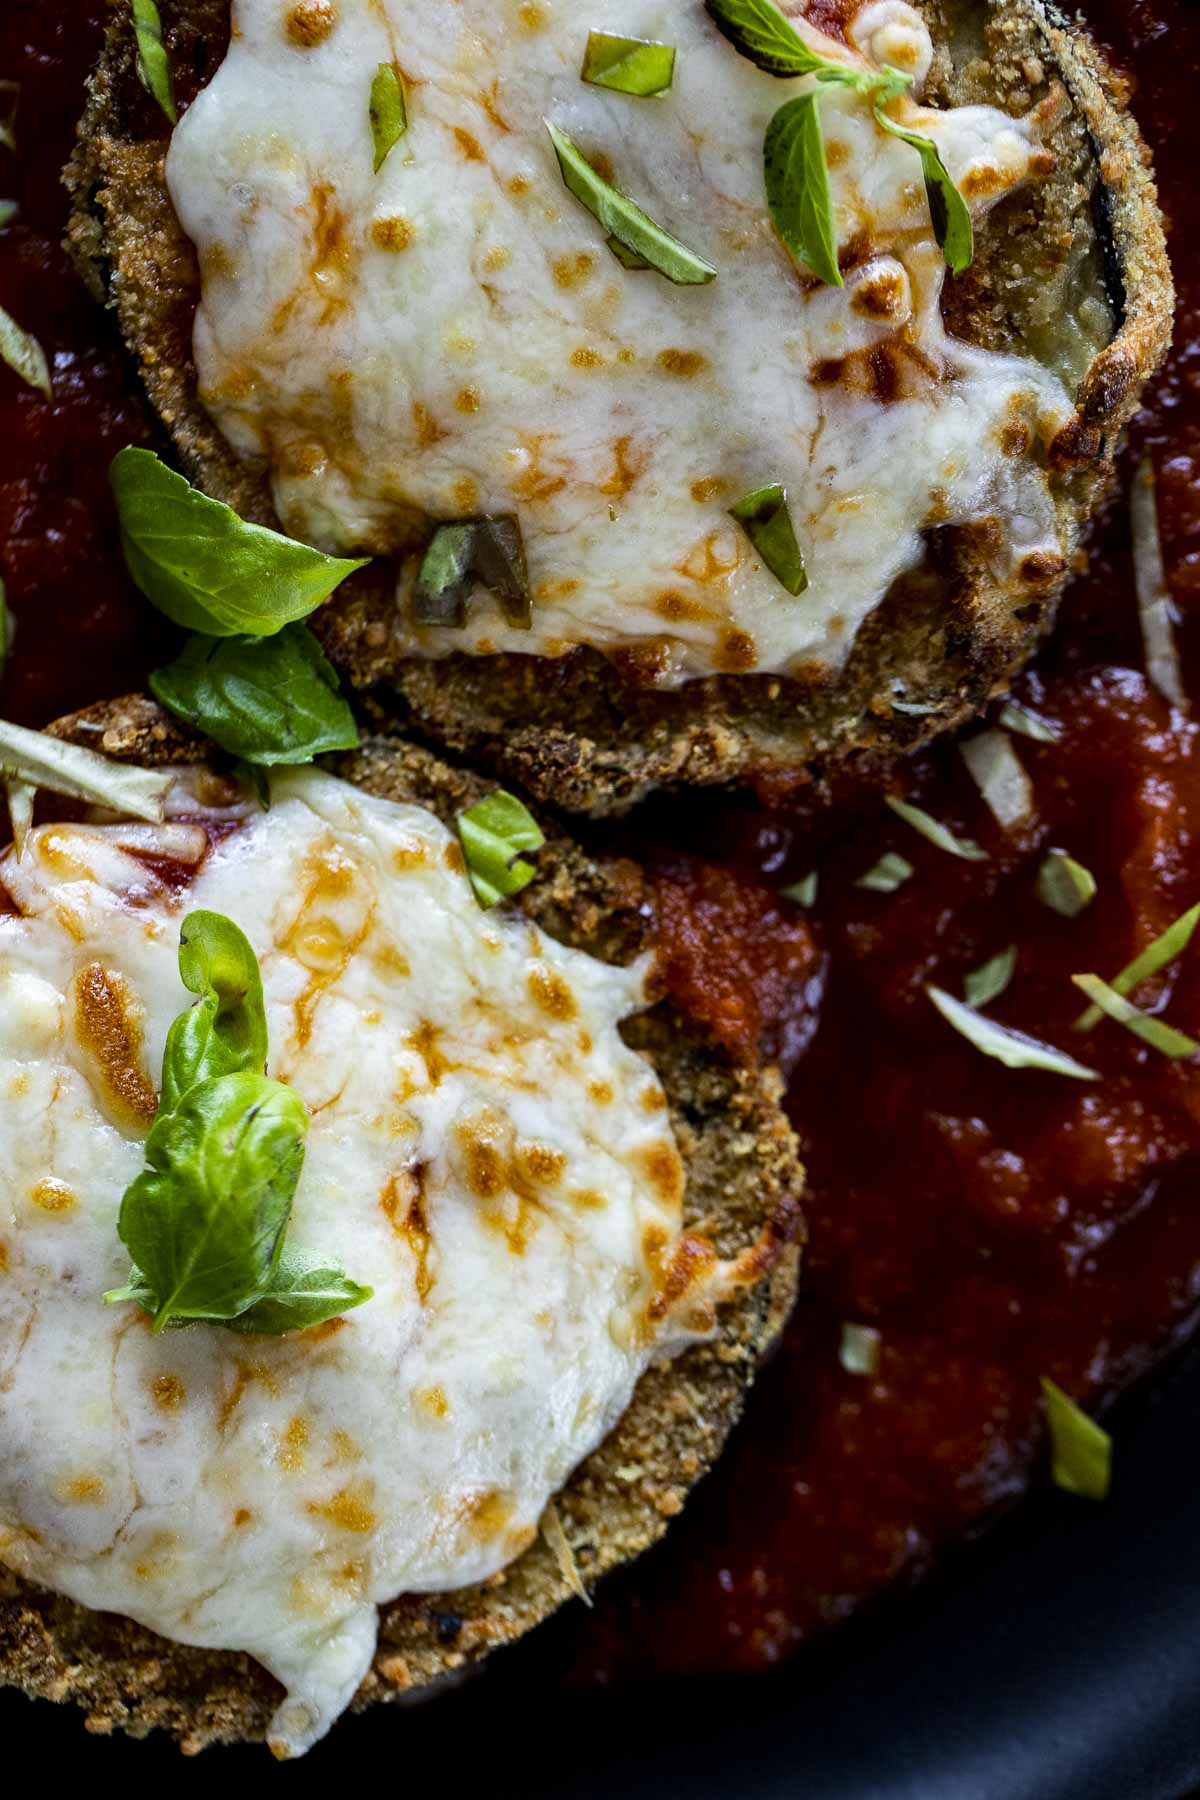 Close up of eggplant parmesan with melted mozzarella on top.